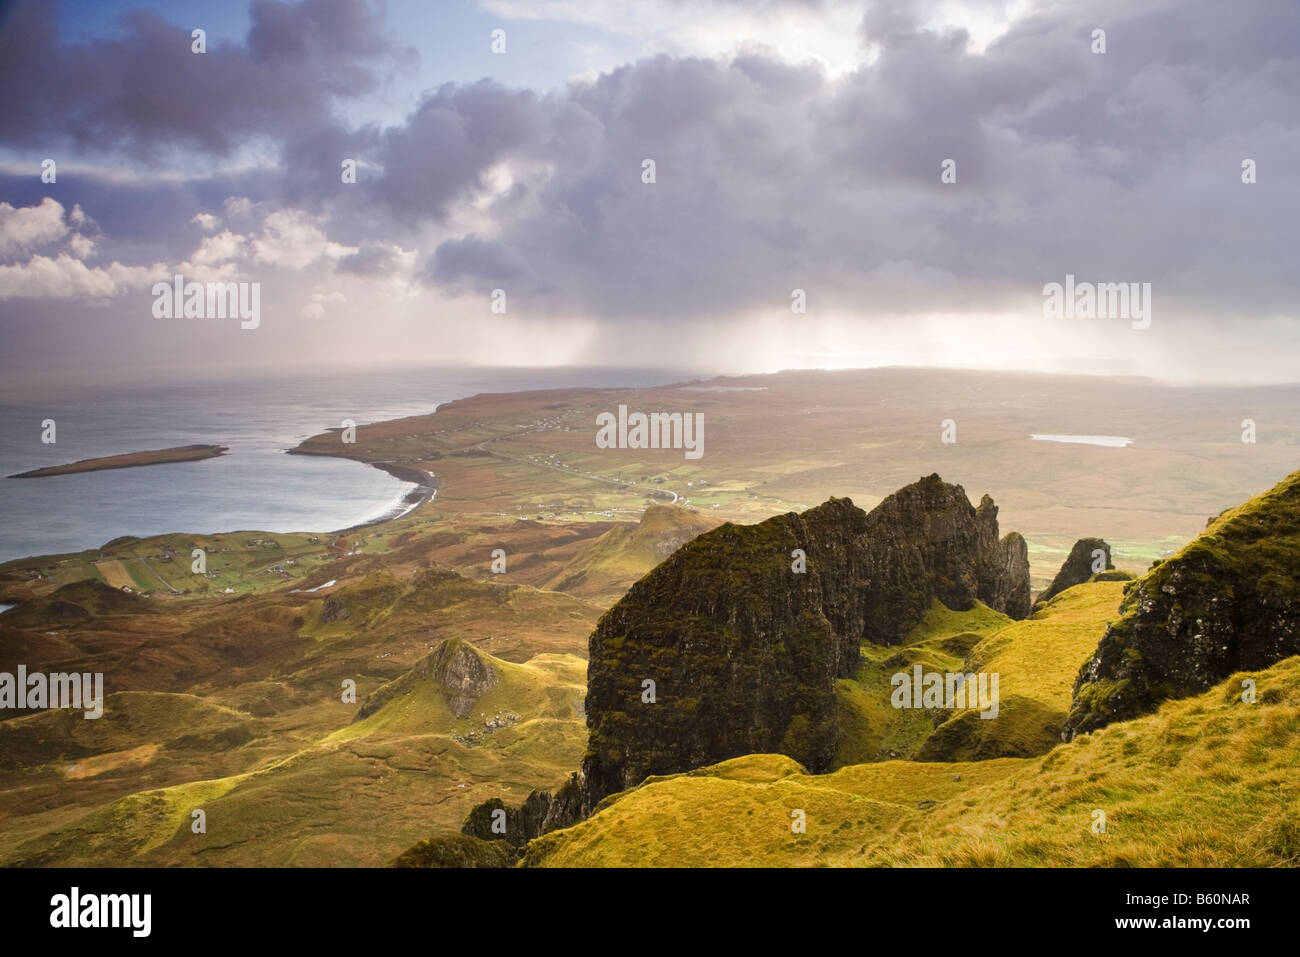 The Quiraing, Staffin Bay beyond. Isle of Skye, Scotland, UK - Stock Image